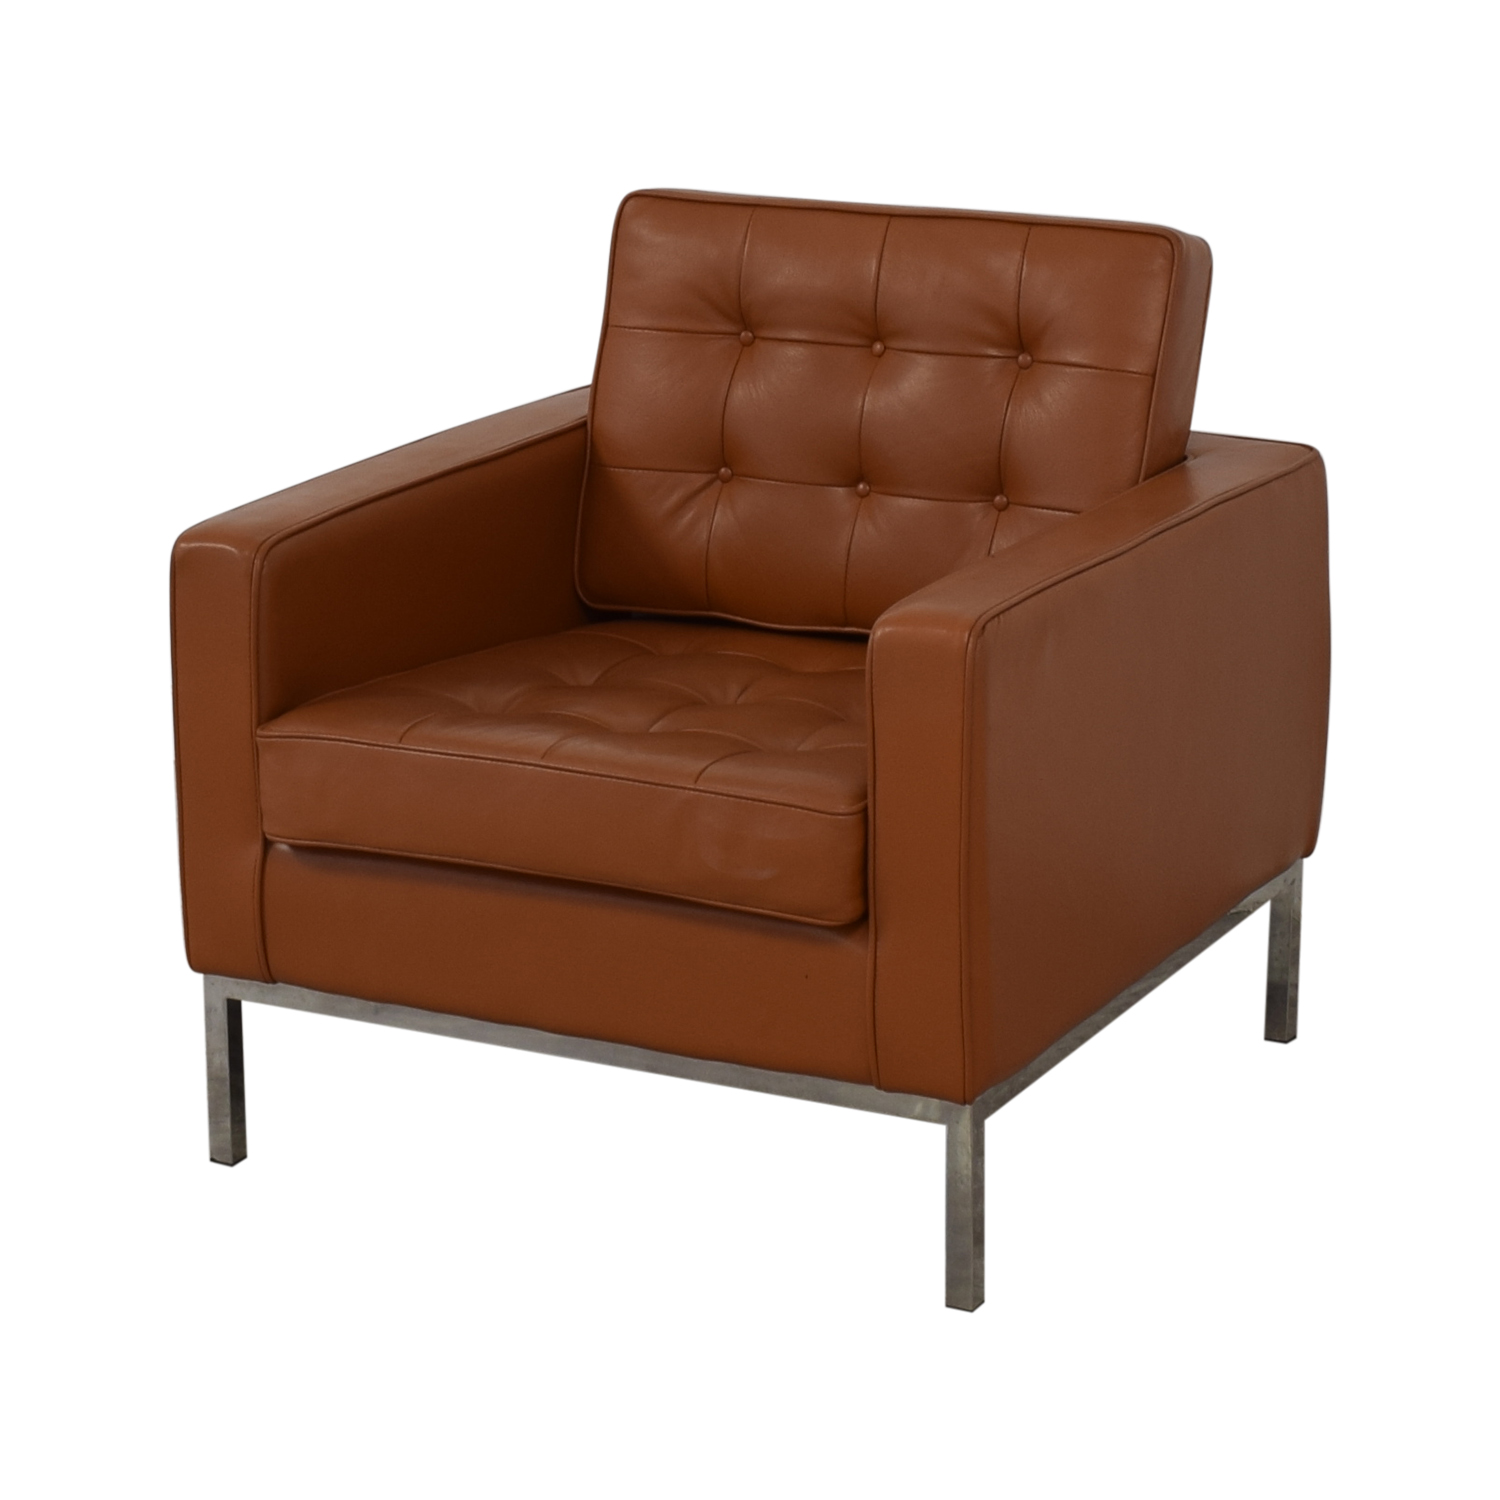 Kardiel Kardiel Brown Leather Chair price